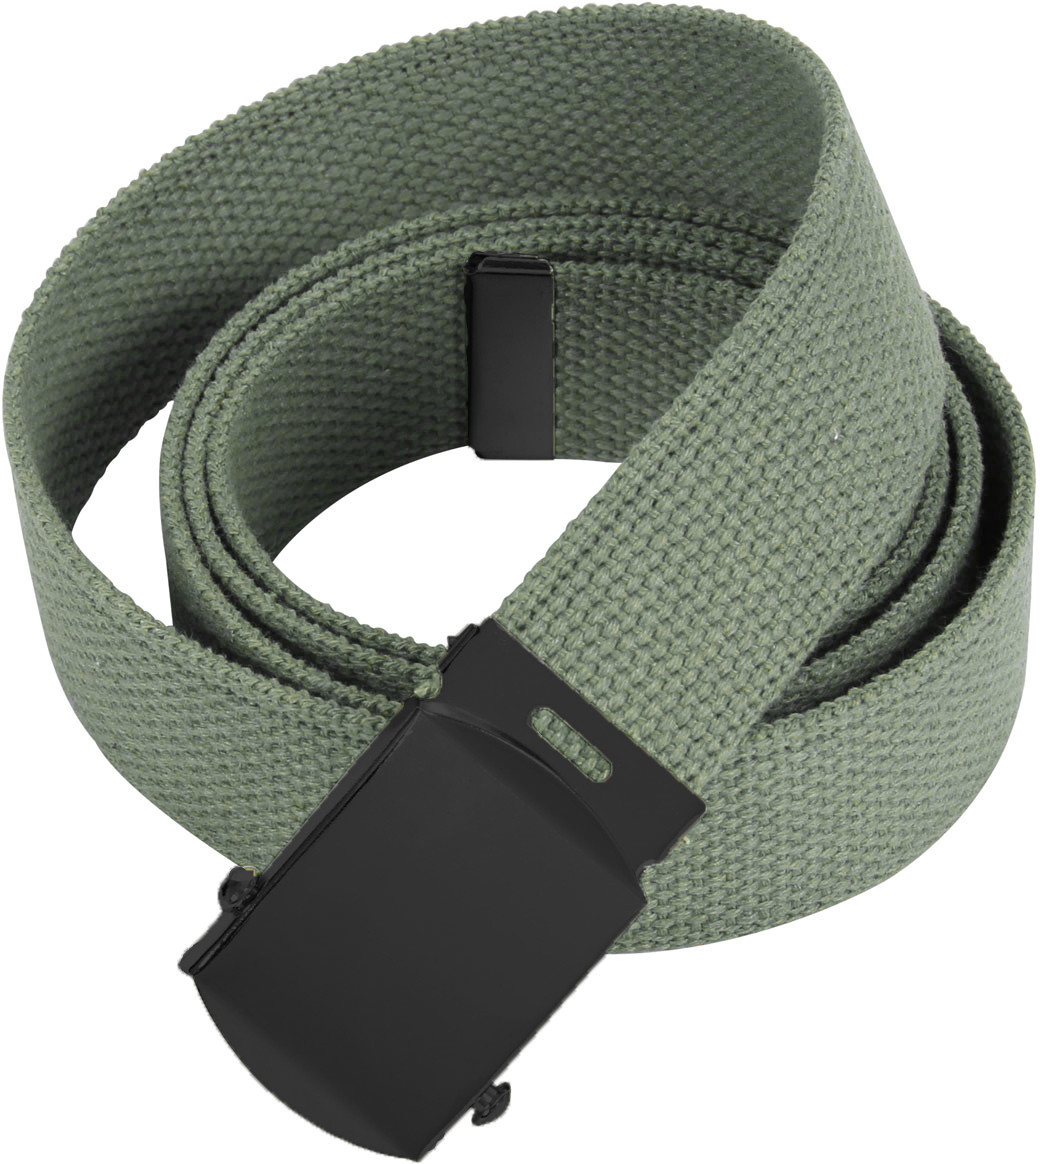 Foliage Green Military Web Belt with Black Buckle (54